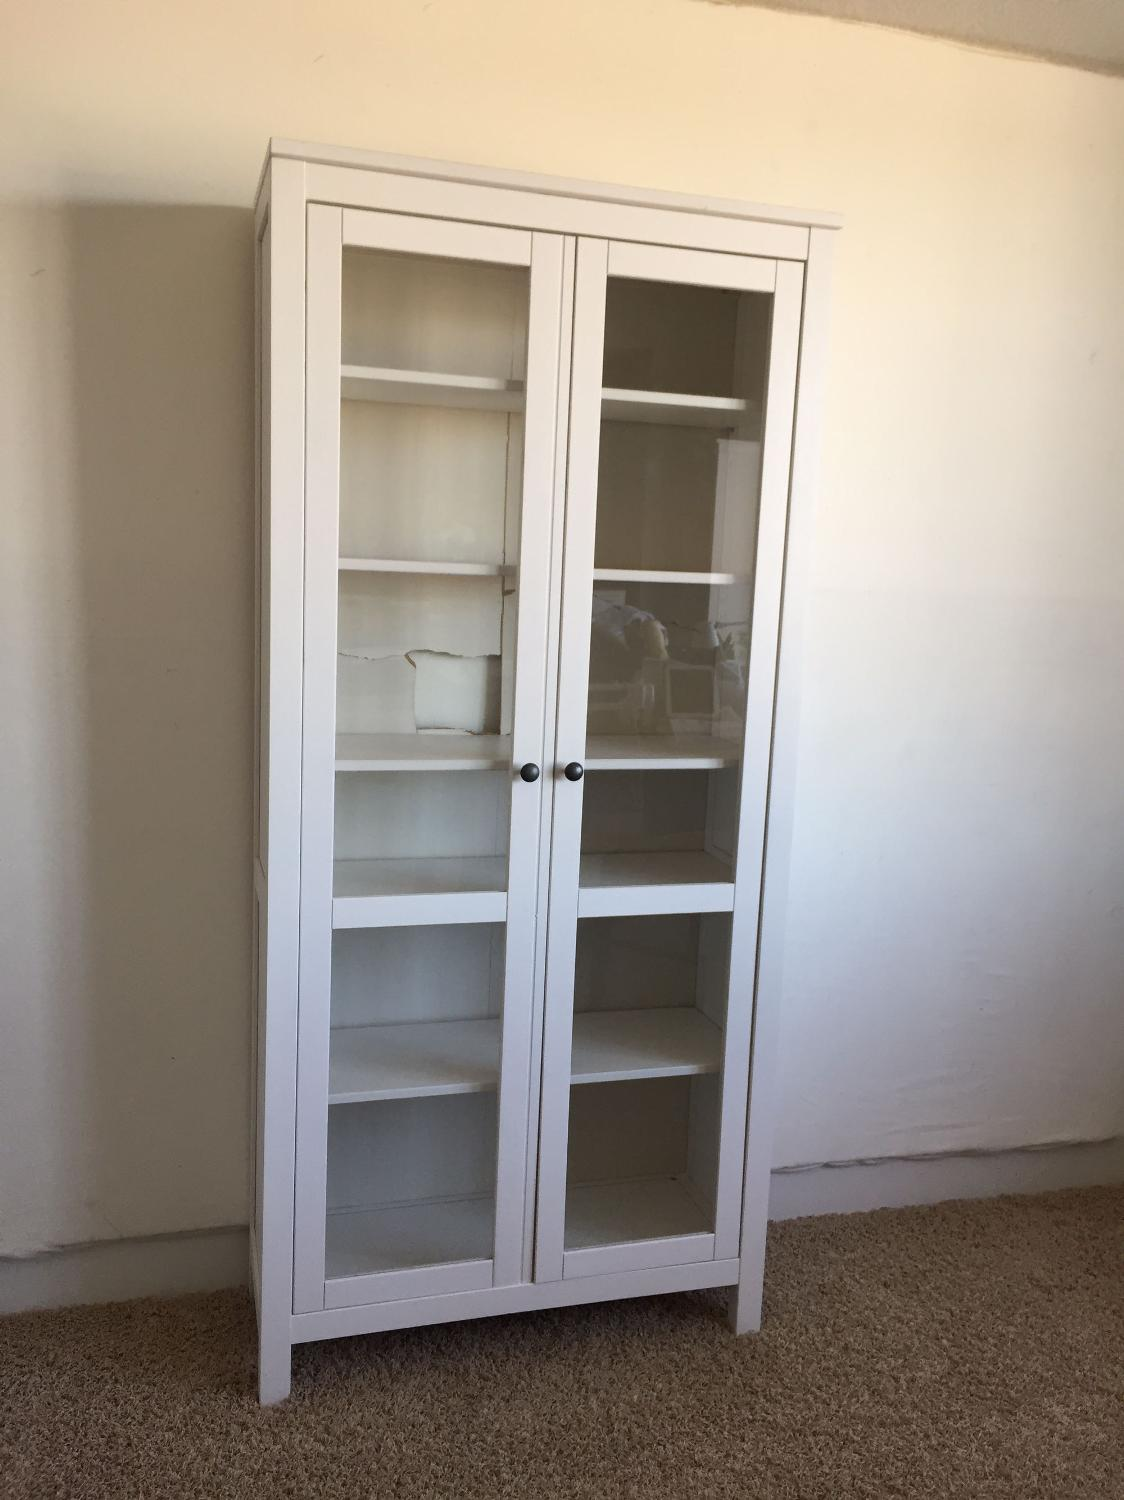 Find More Ikea Cabinet For Sale For Sale At Up To 90 Off